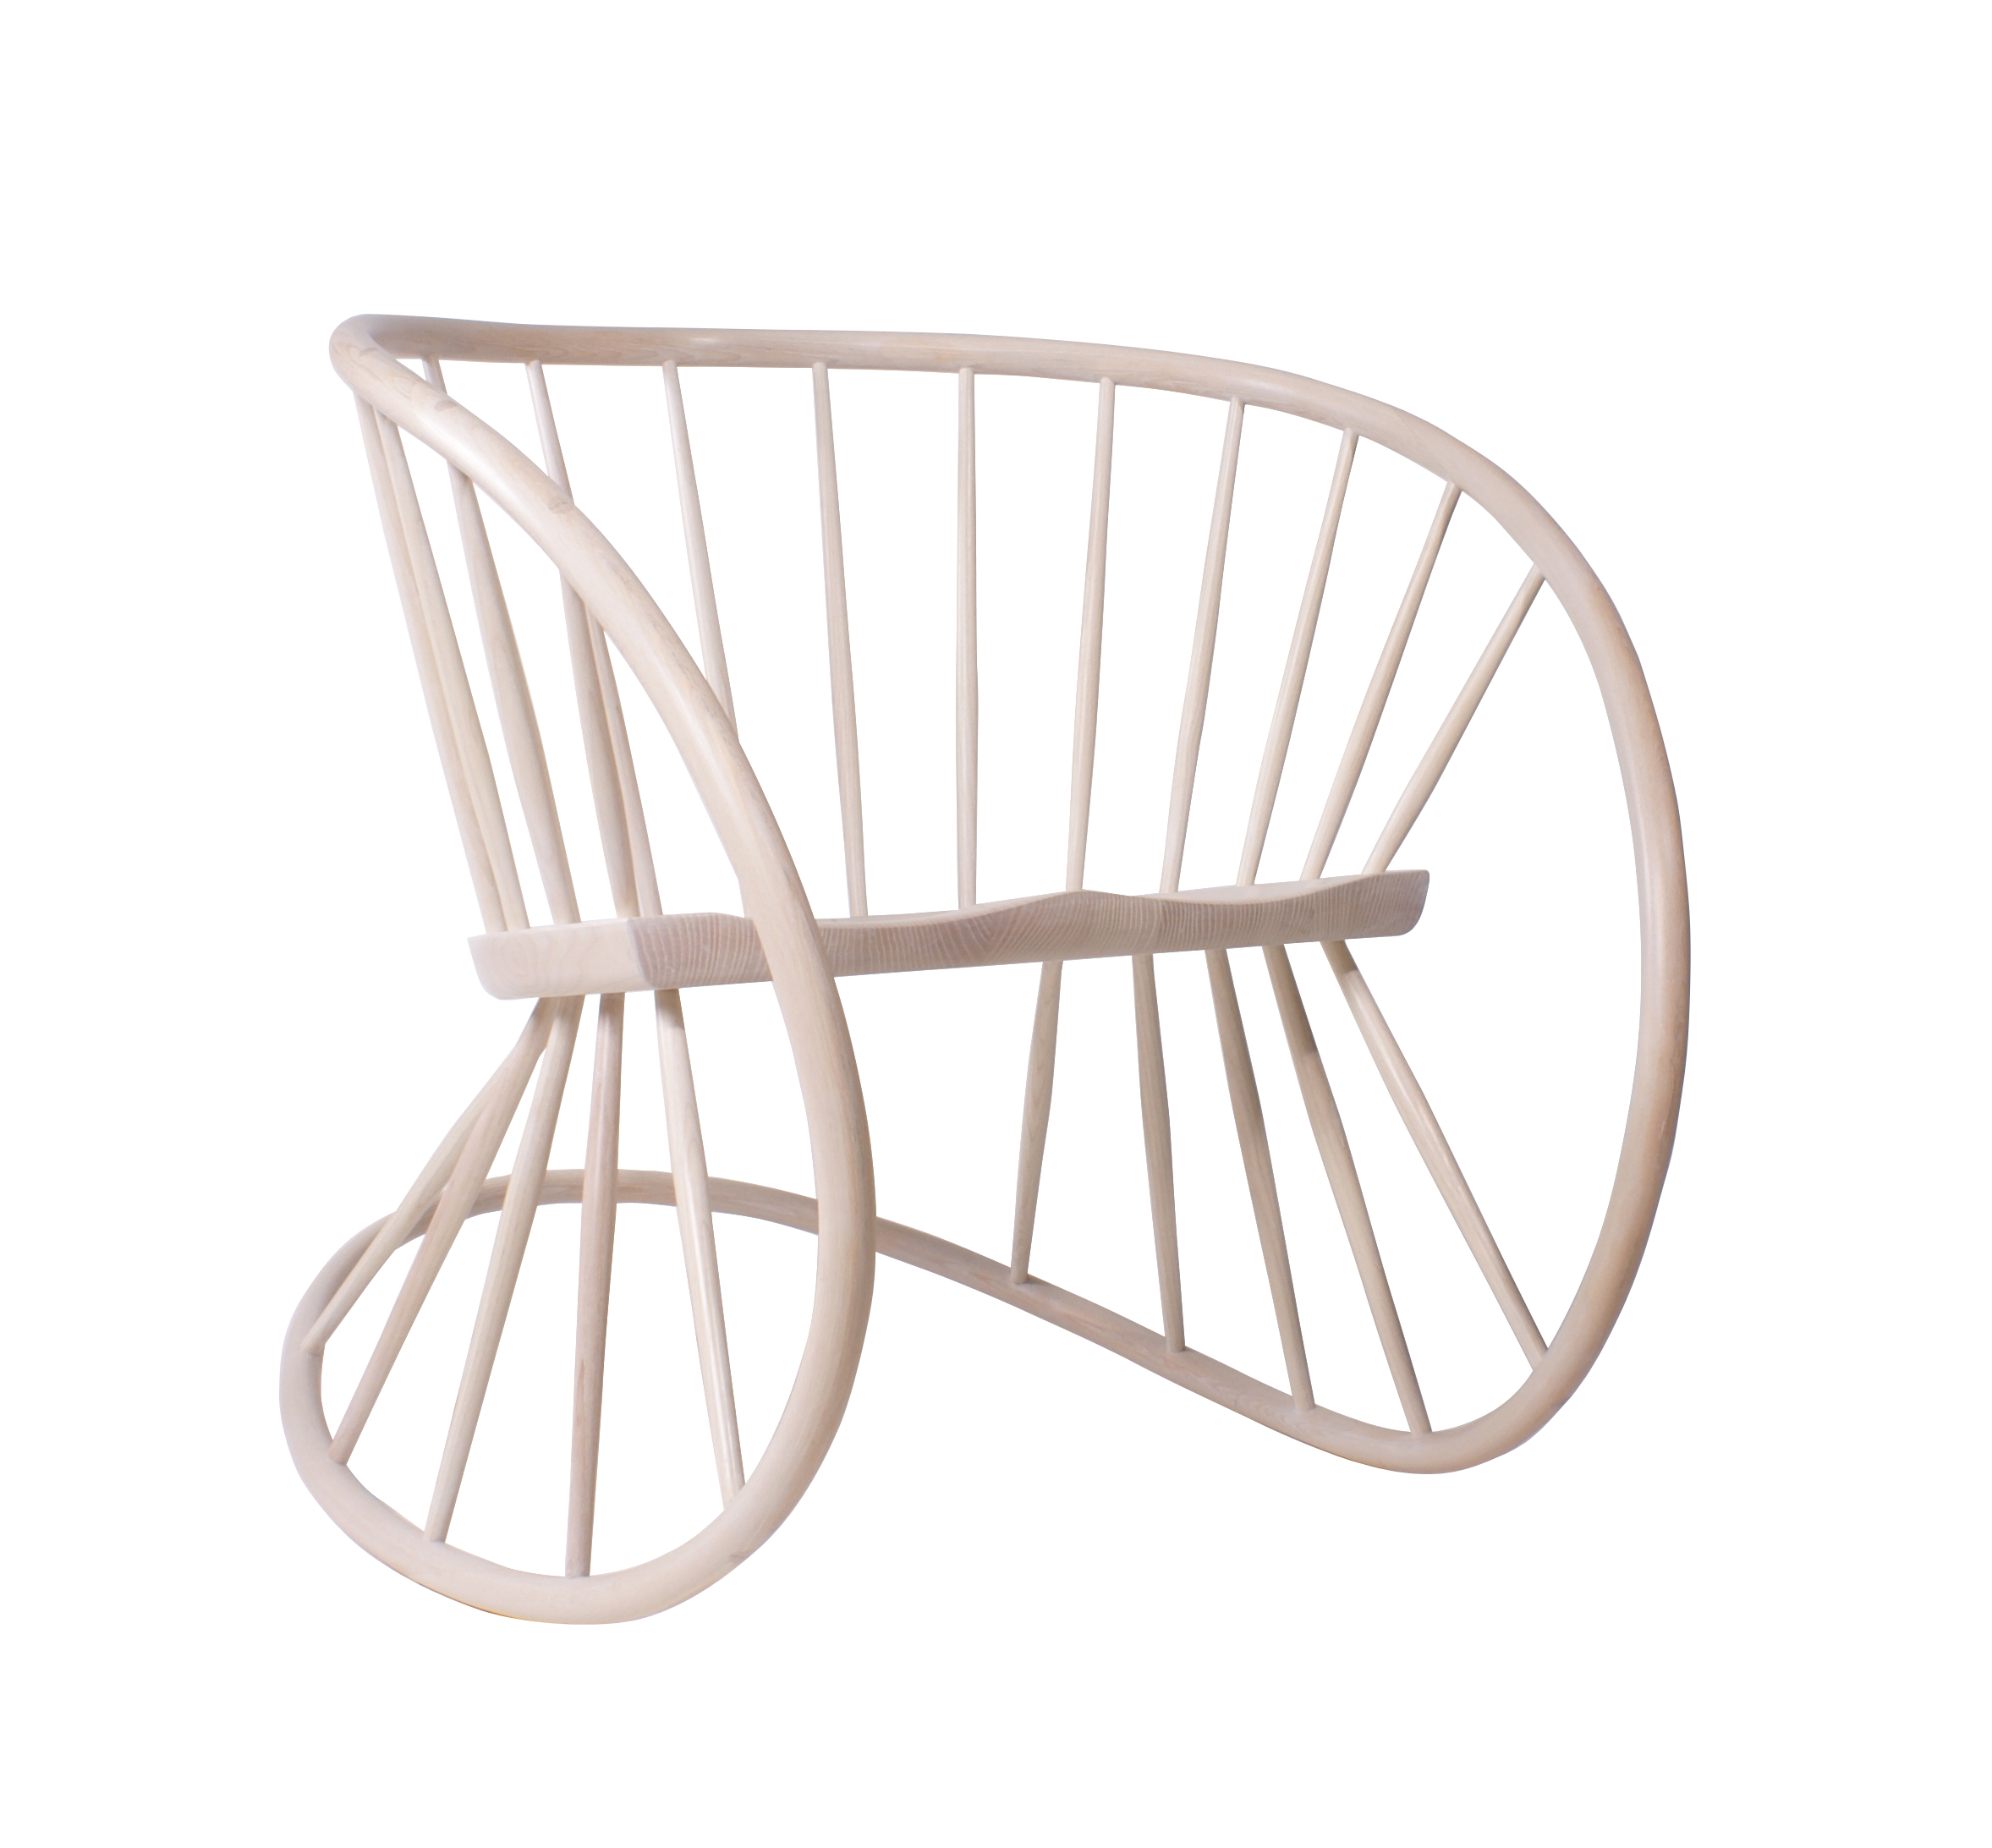 steam bent, curved, oak rocking chair on a white background